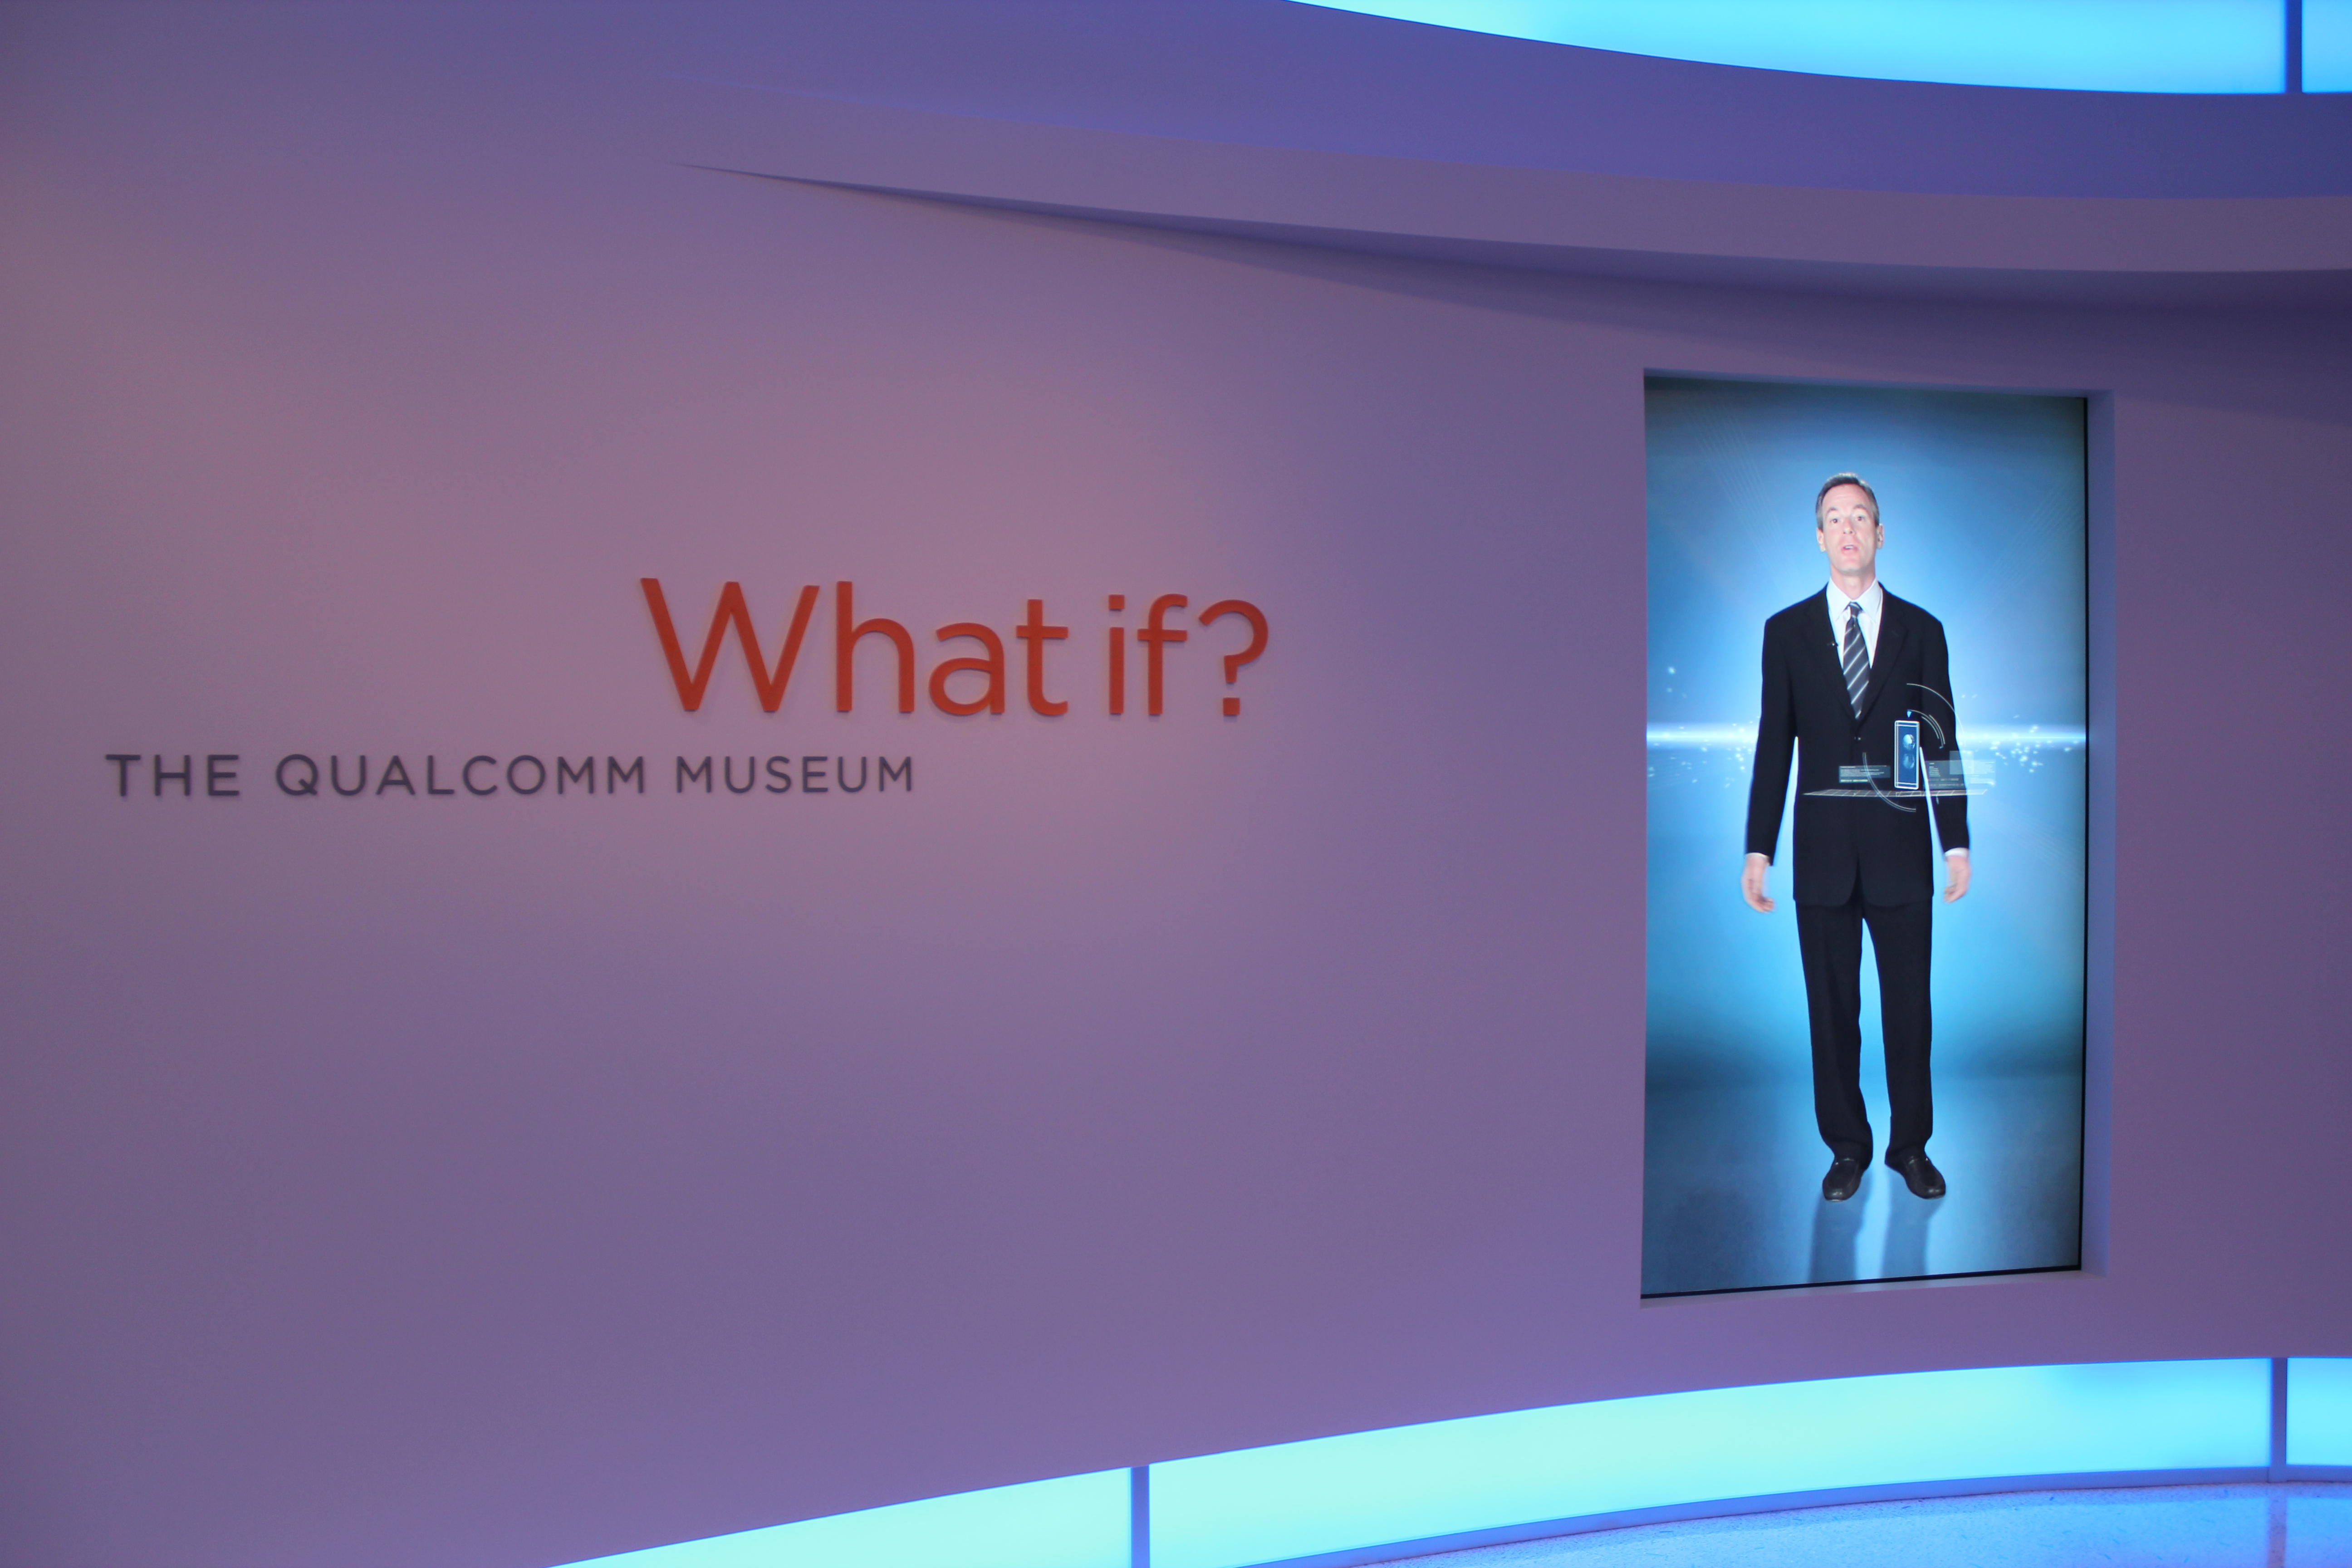 Qualcomm looks back at its history